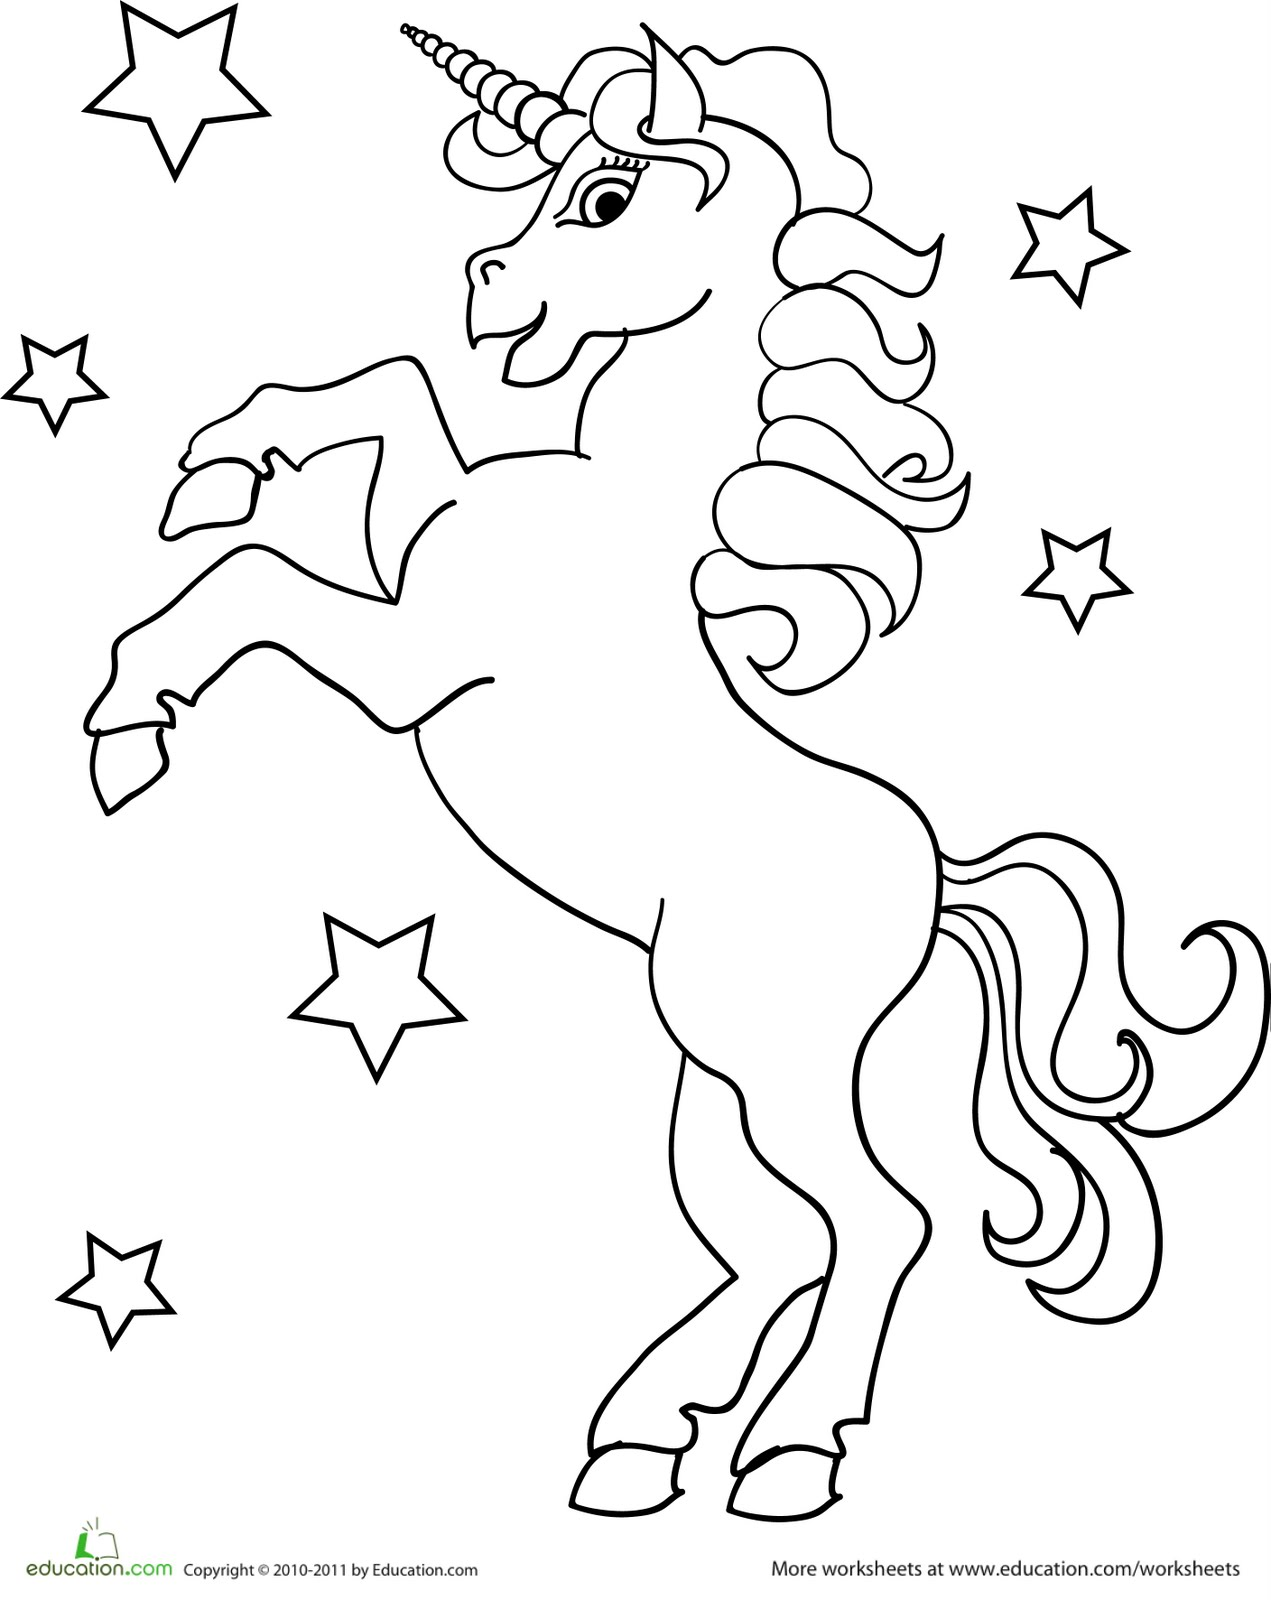 Free unicorn maze coloring pages